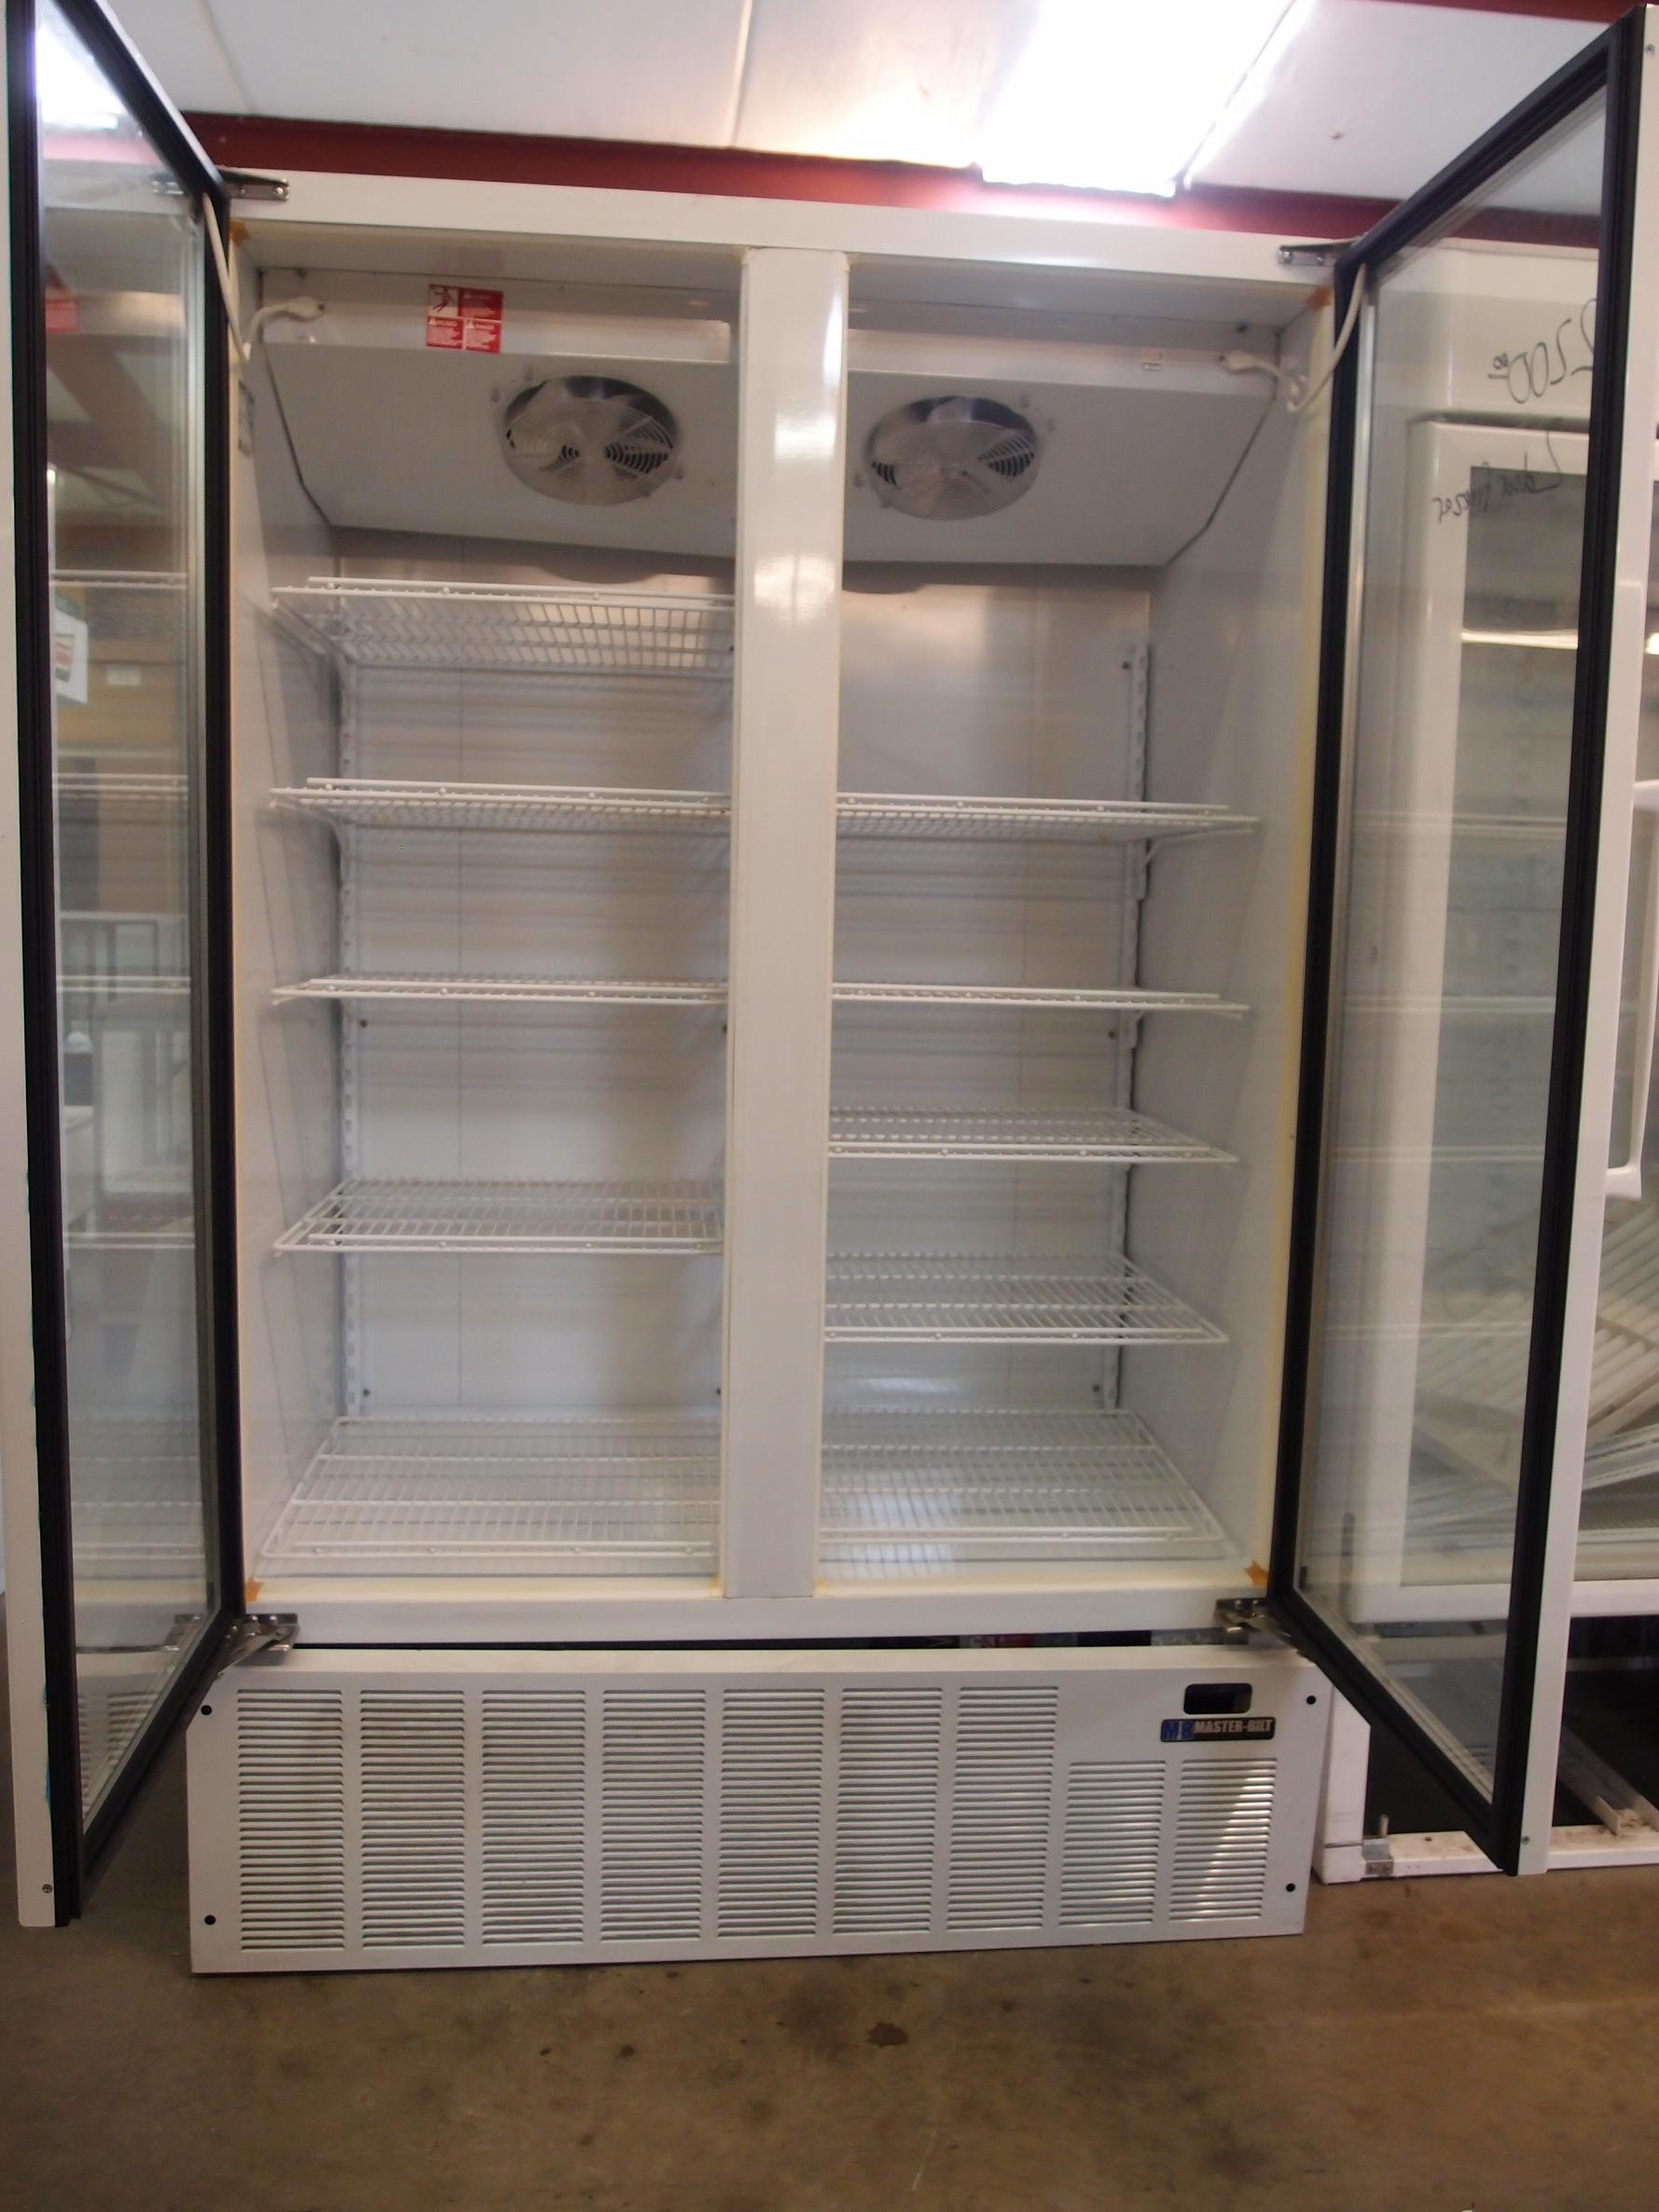 2 Door Freezer Reeves Store Fixtures